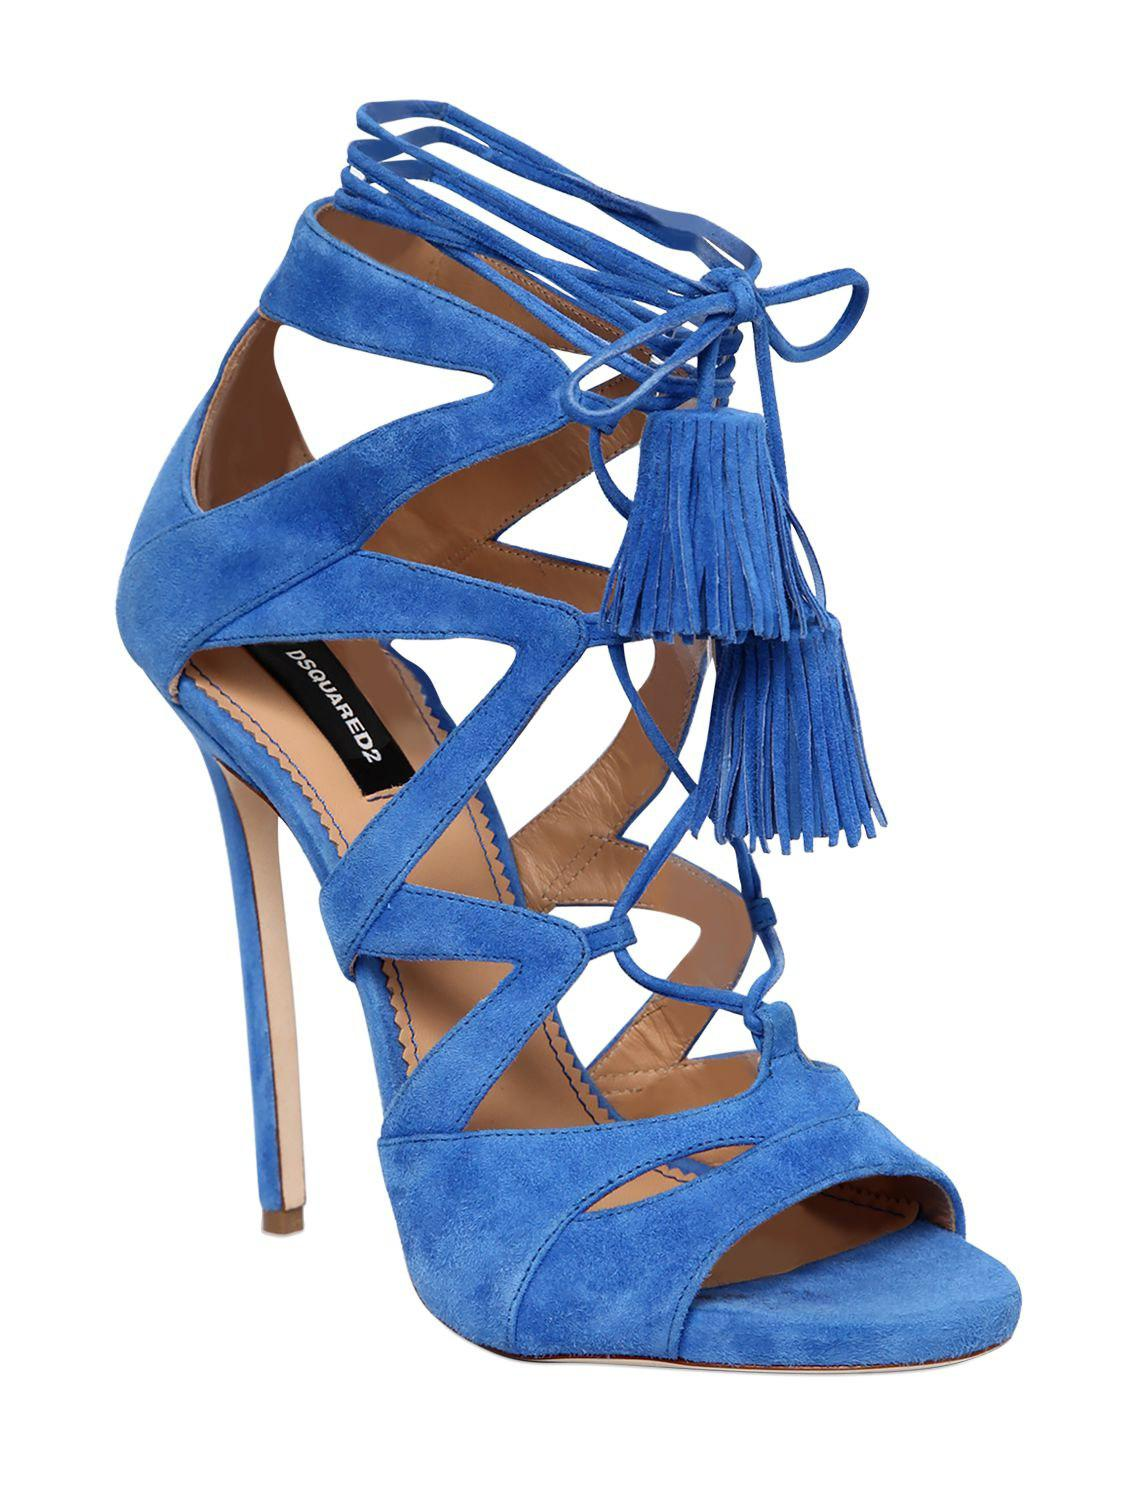 Dsquared2 120MM SUEDE LACE-UP SANDALS W/ TASSELS Qdee9